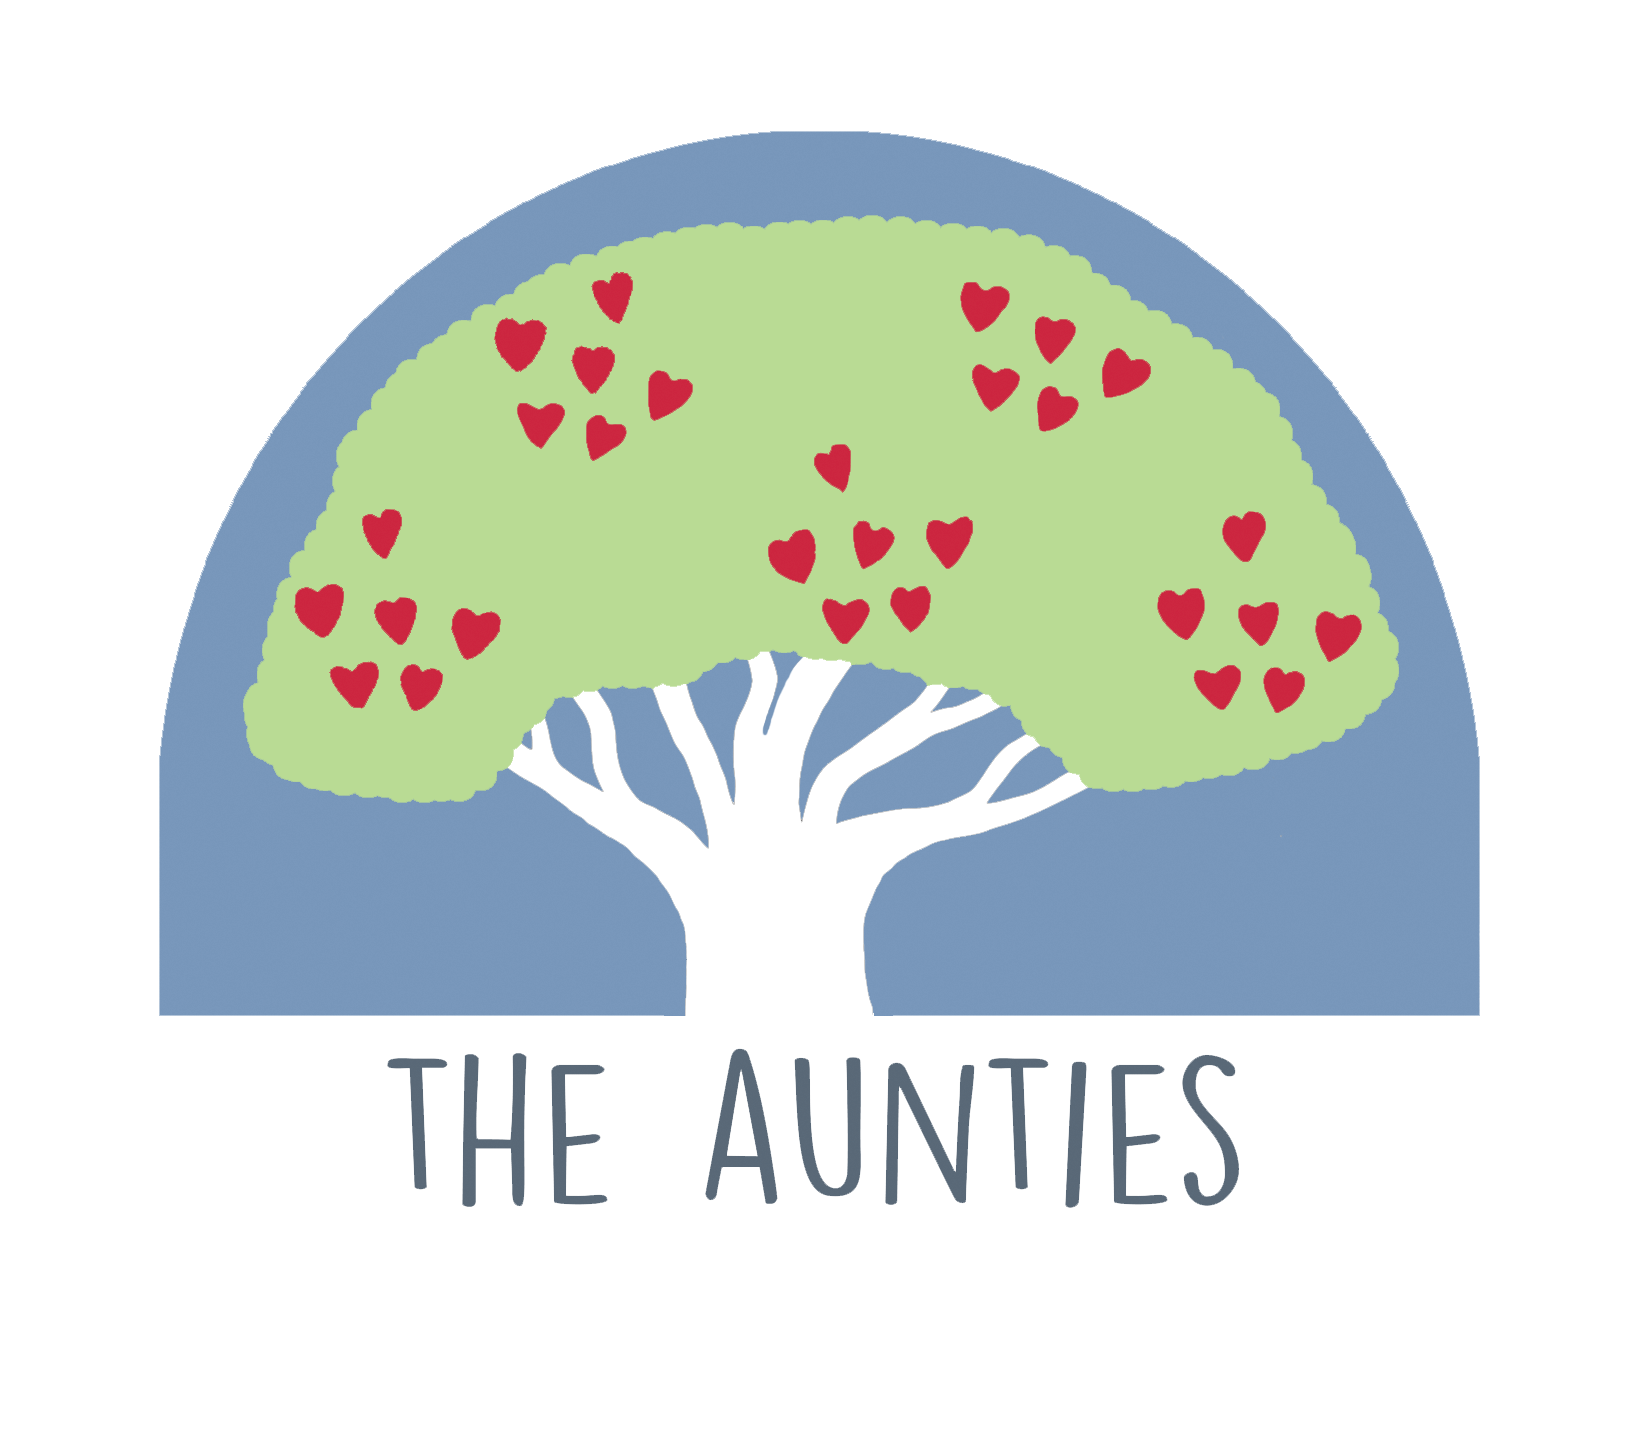 The Aunties (Charity)